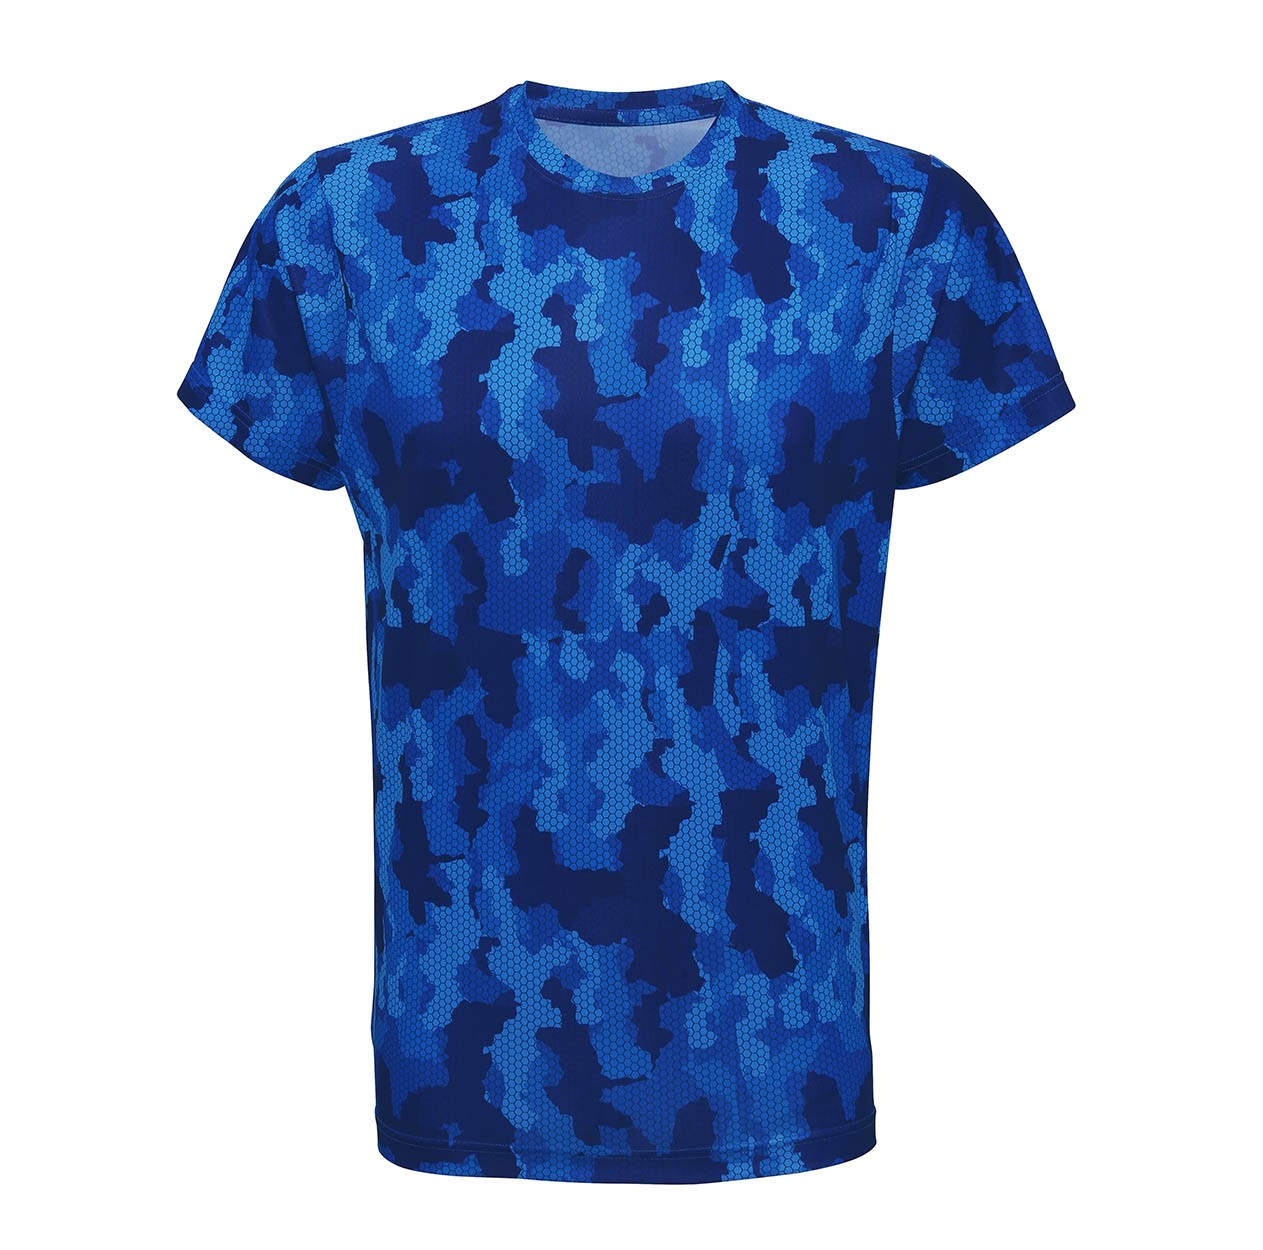 TRIDRI HEXOFLAGE PERFORMANCE T-SHIRT